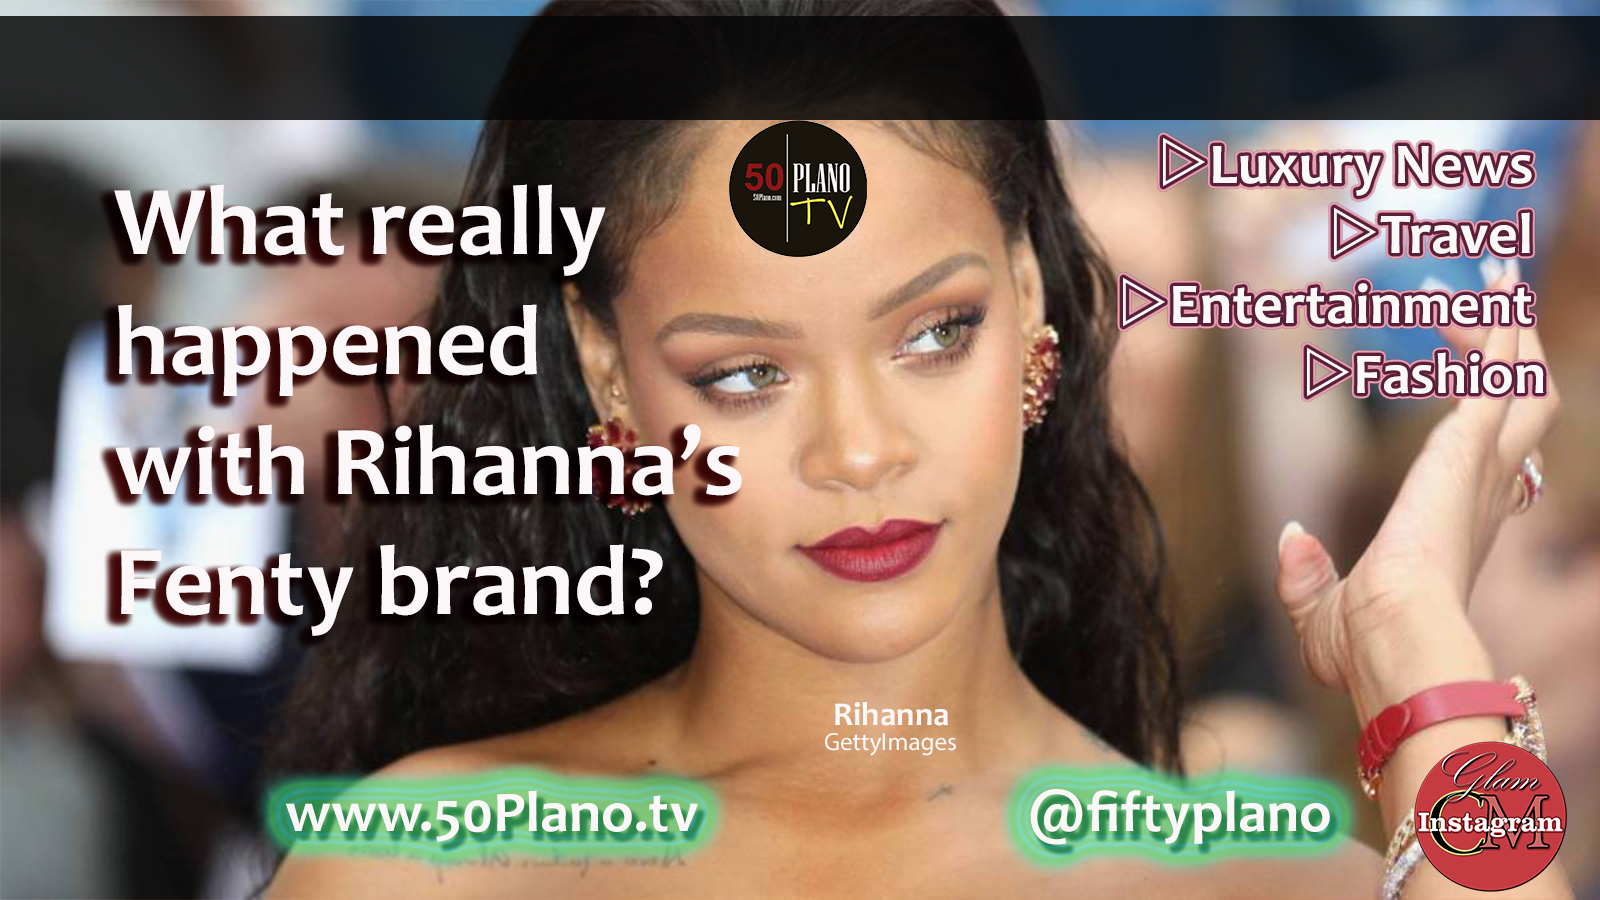 What really happened with Rihanna's Fenty brand?